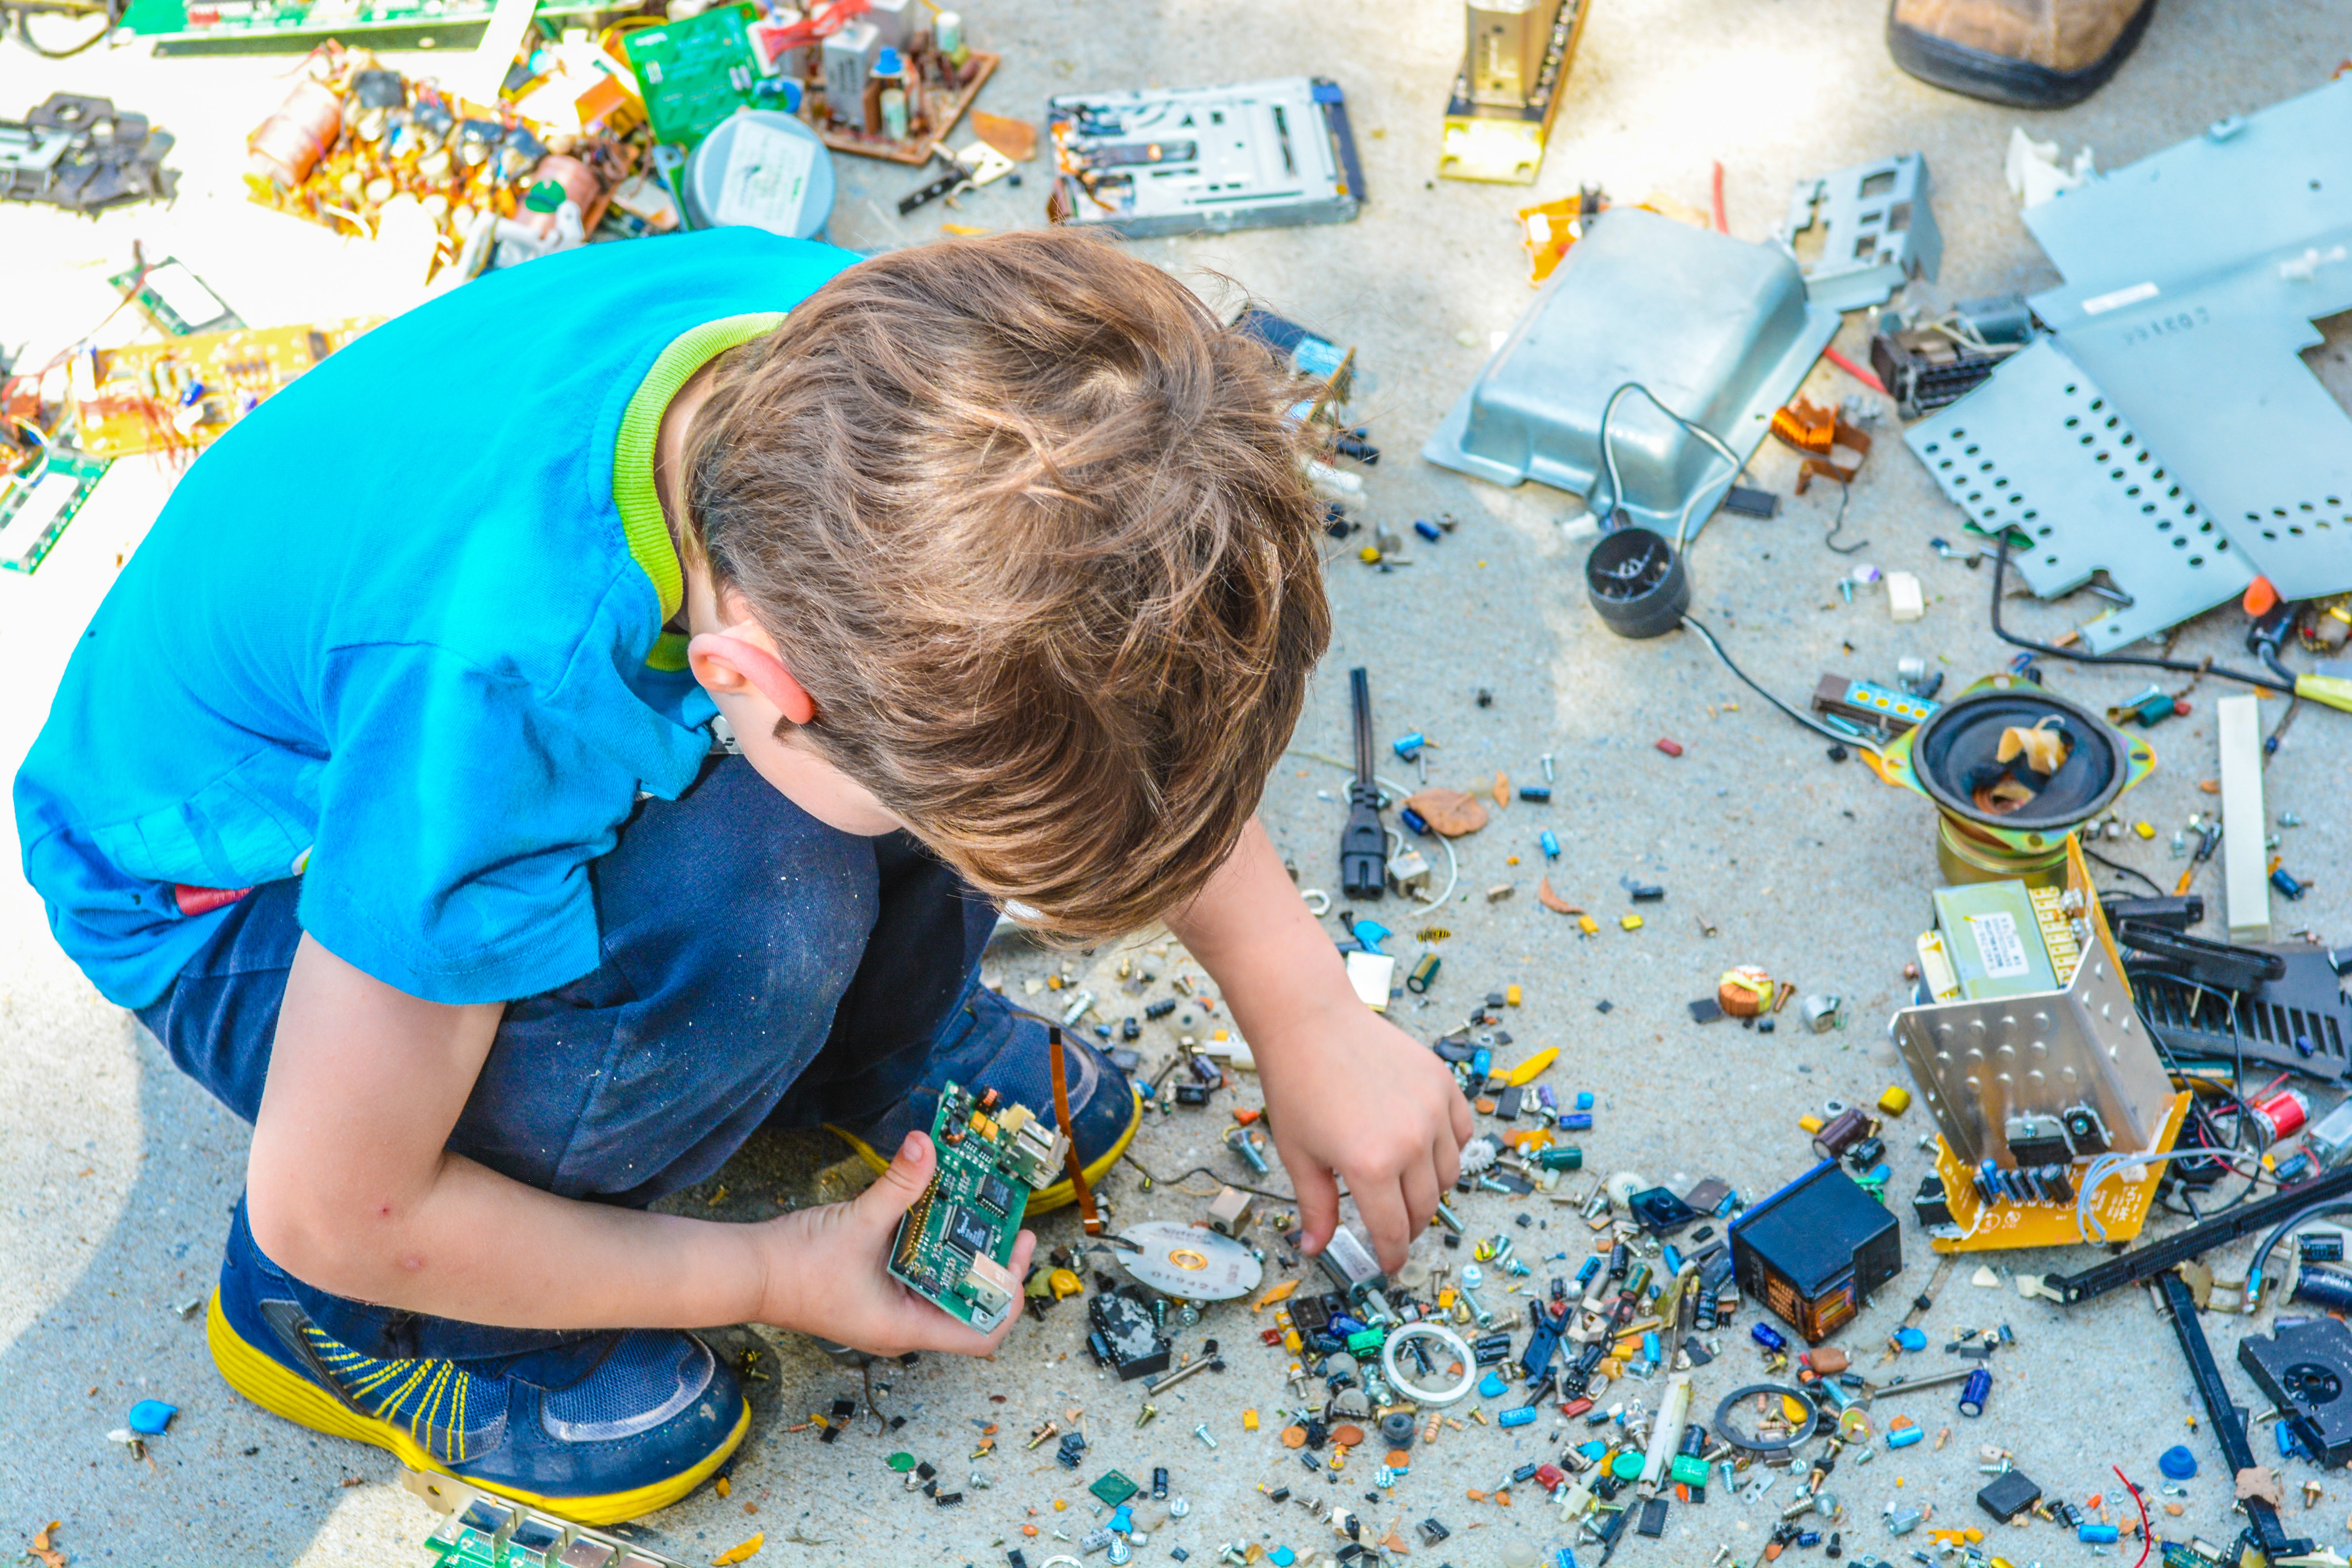 Toddler crouched and playing with recycled plastic pieces